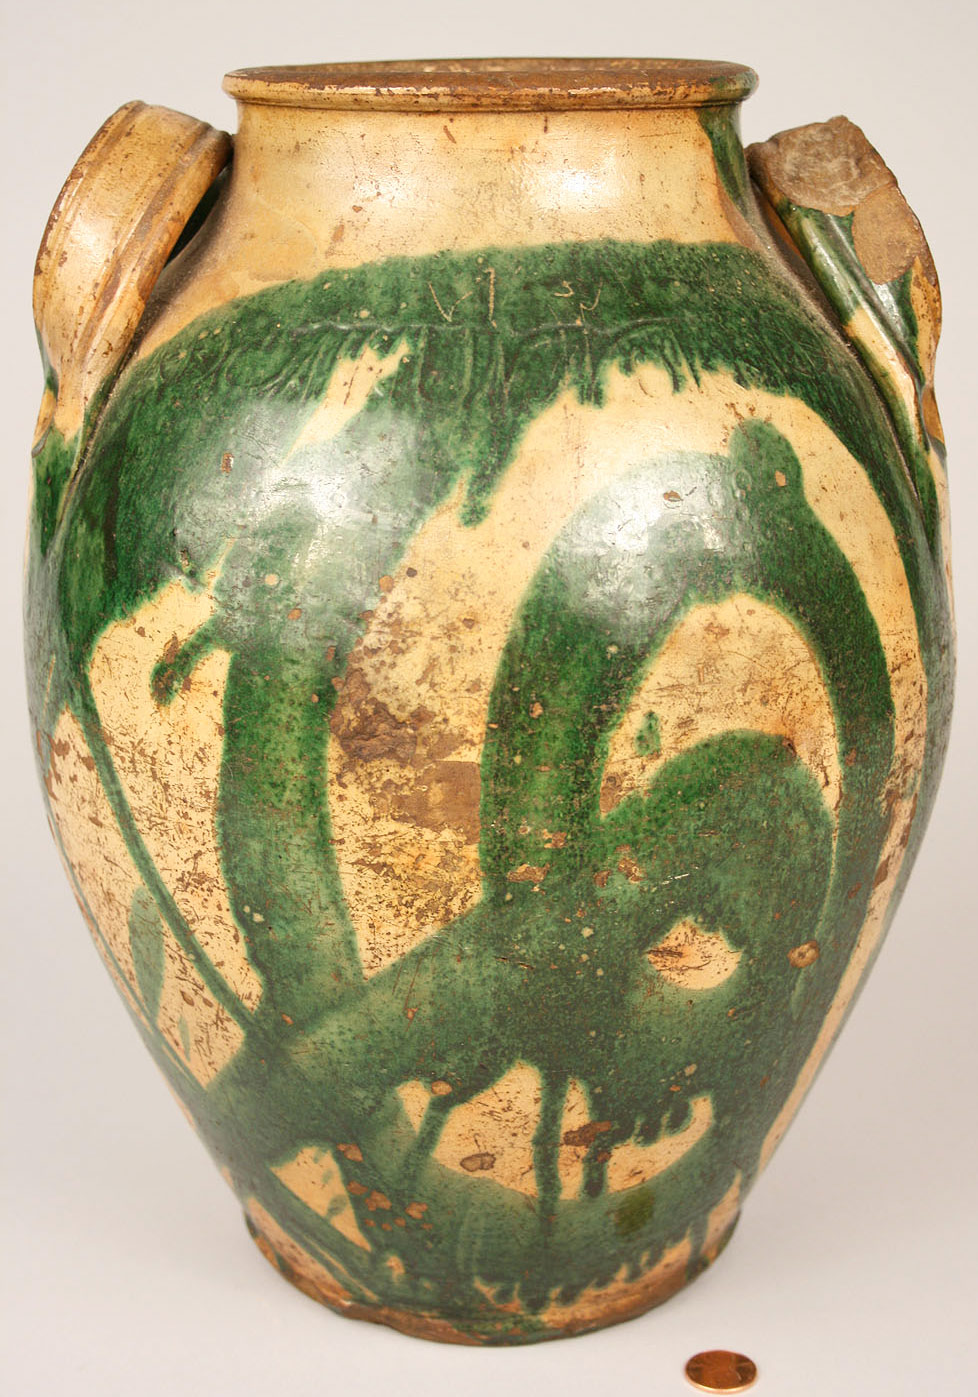 231: East Tennessee Redware Jar, C.A. Haun